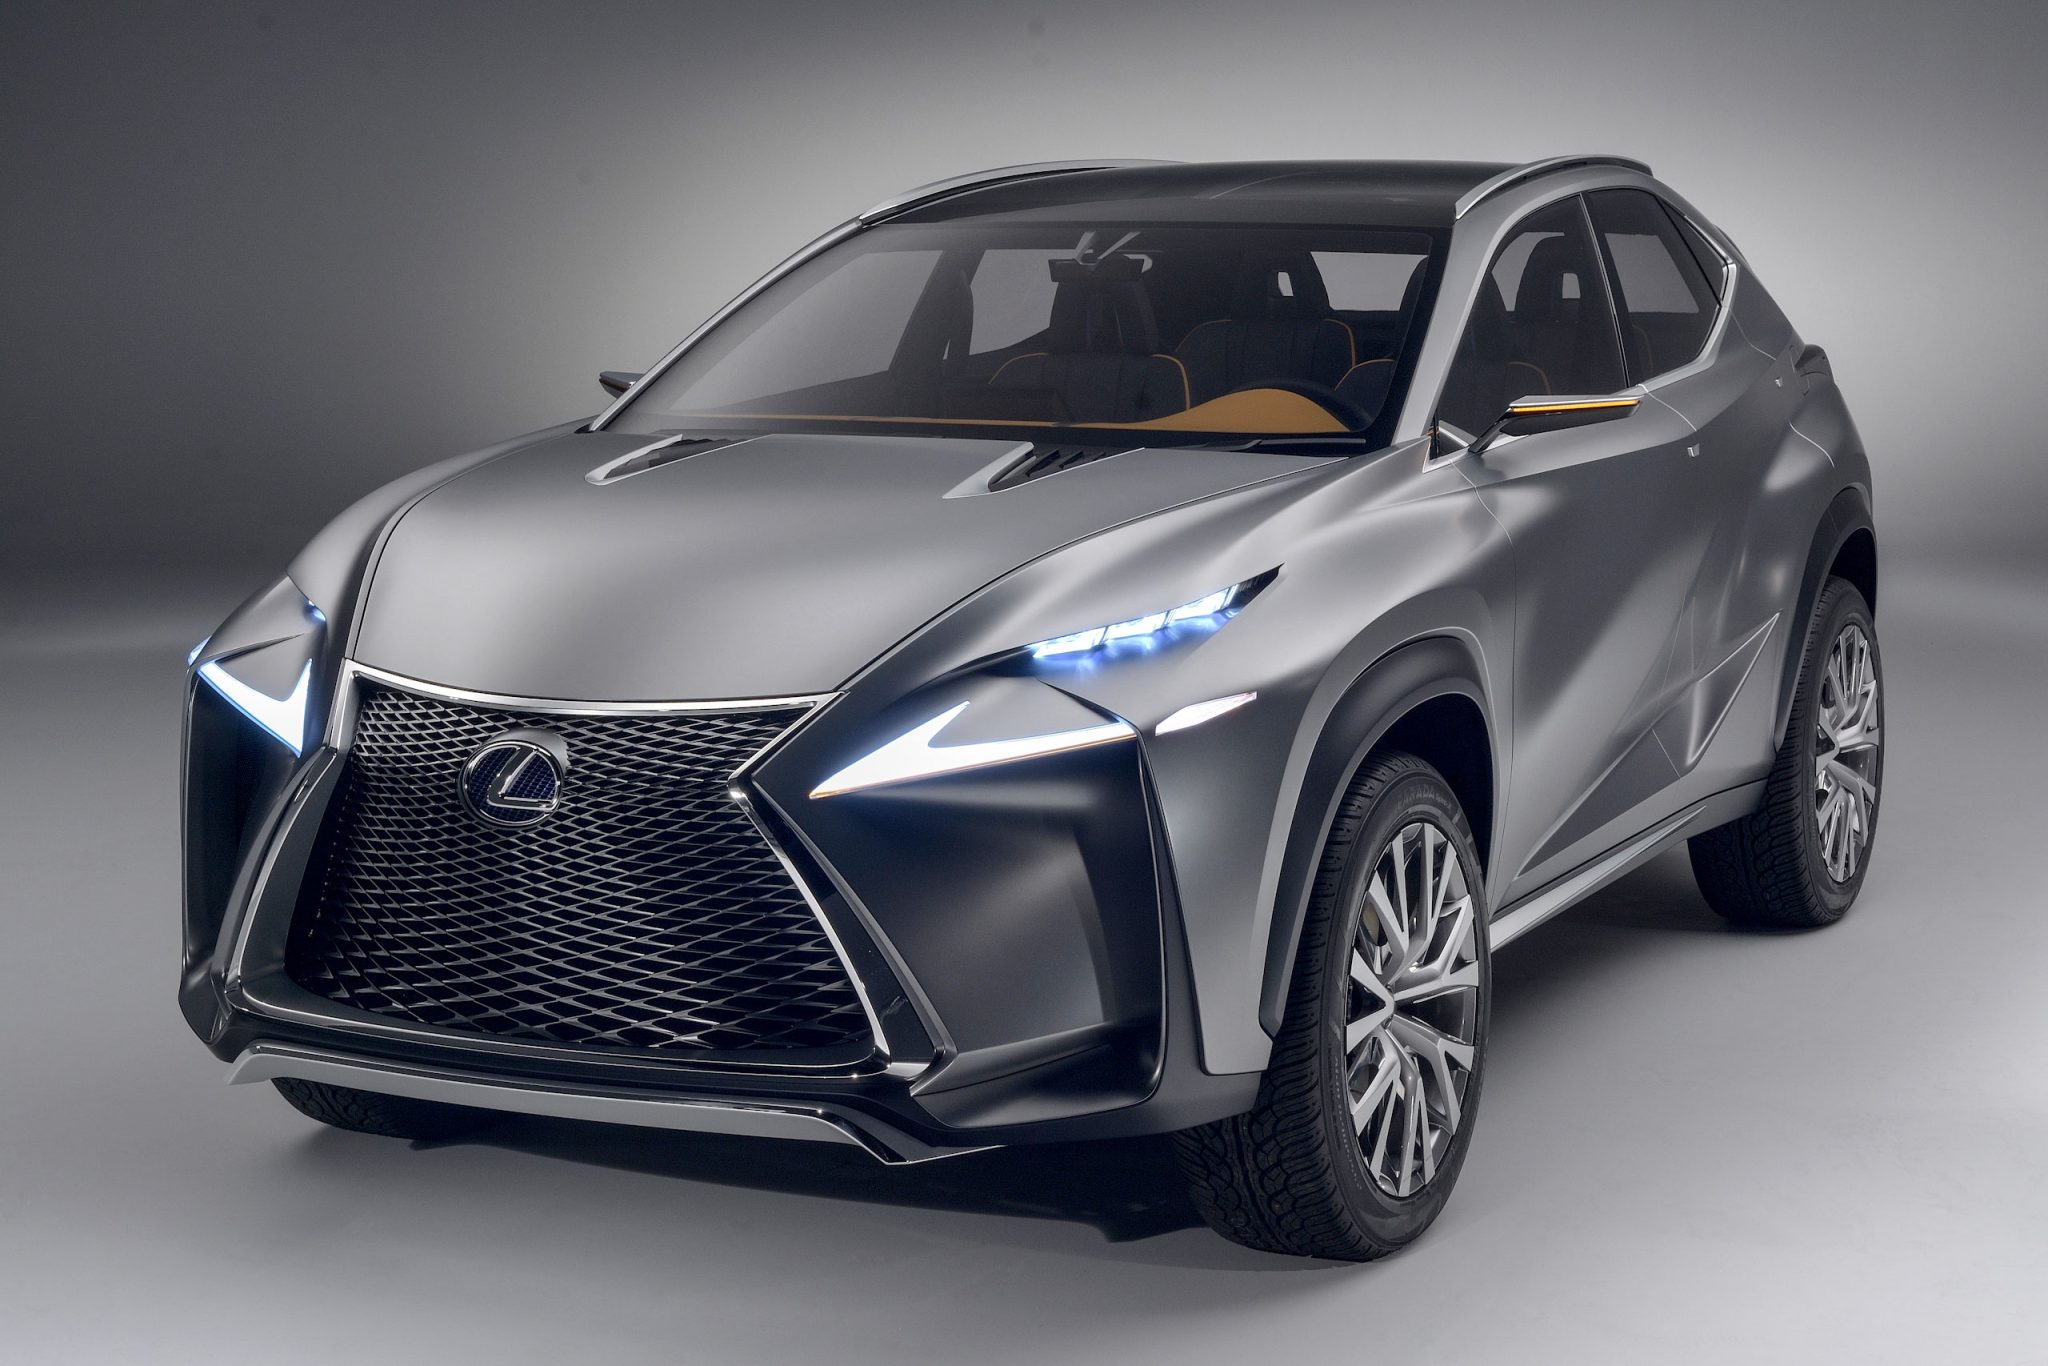 Lexus Cars - News: LF-NX concept revealed